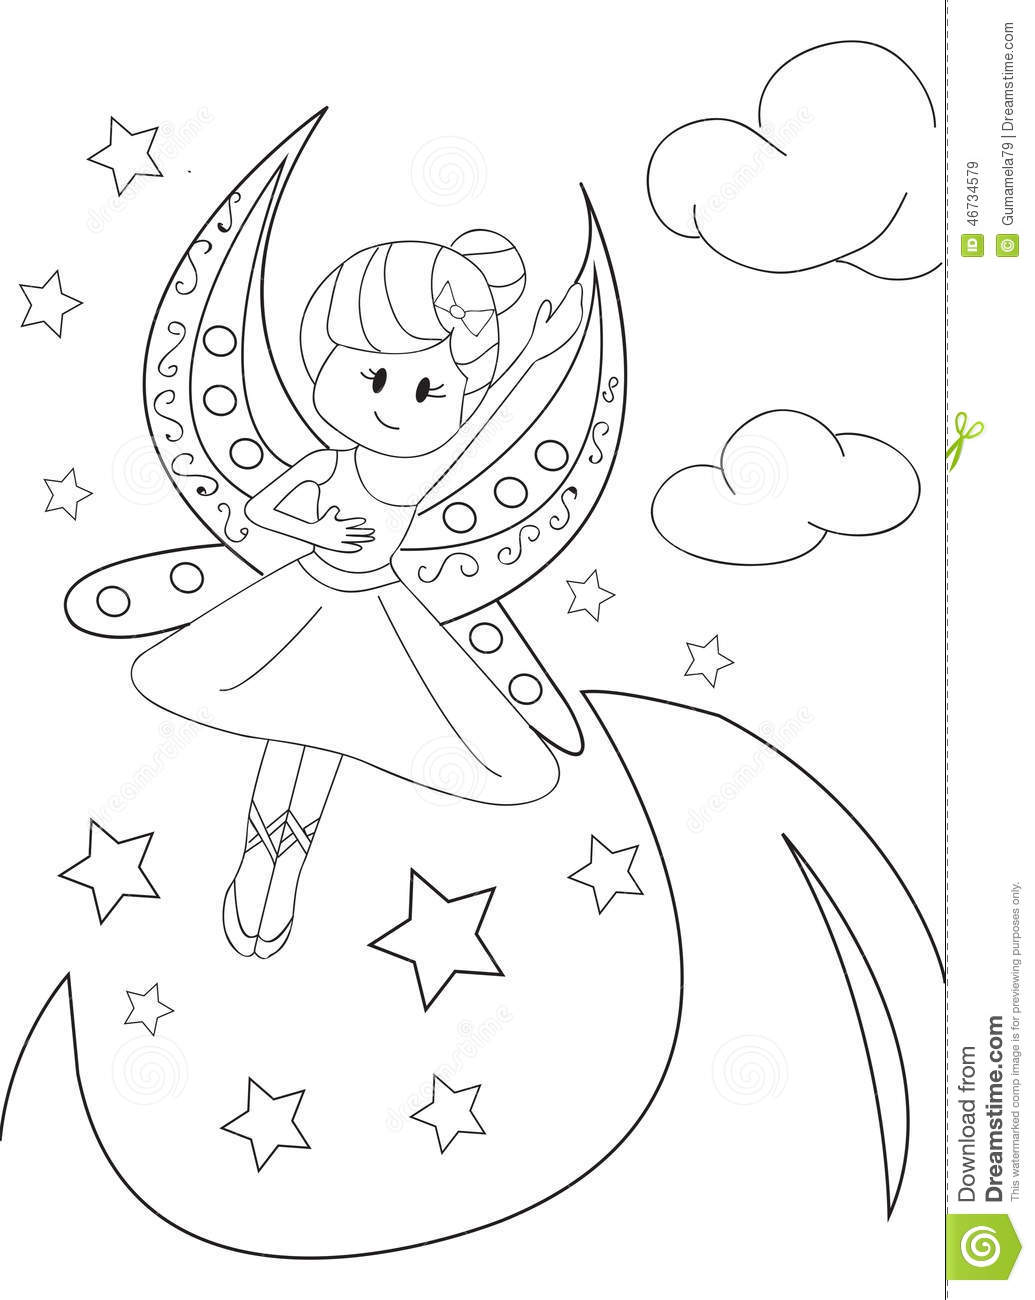 Hand Drawn Coloring Page Of A Moon Fairy Stock